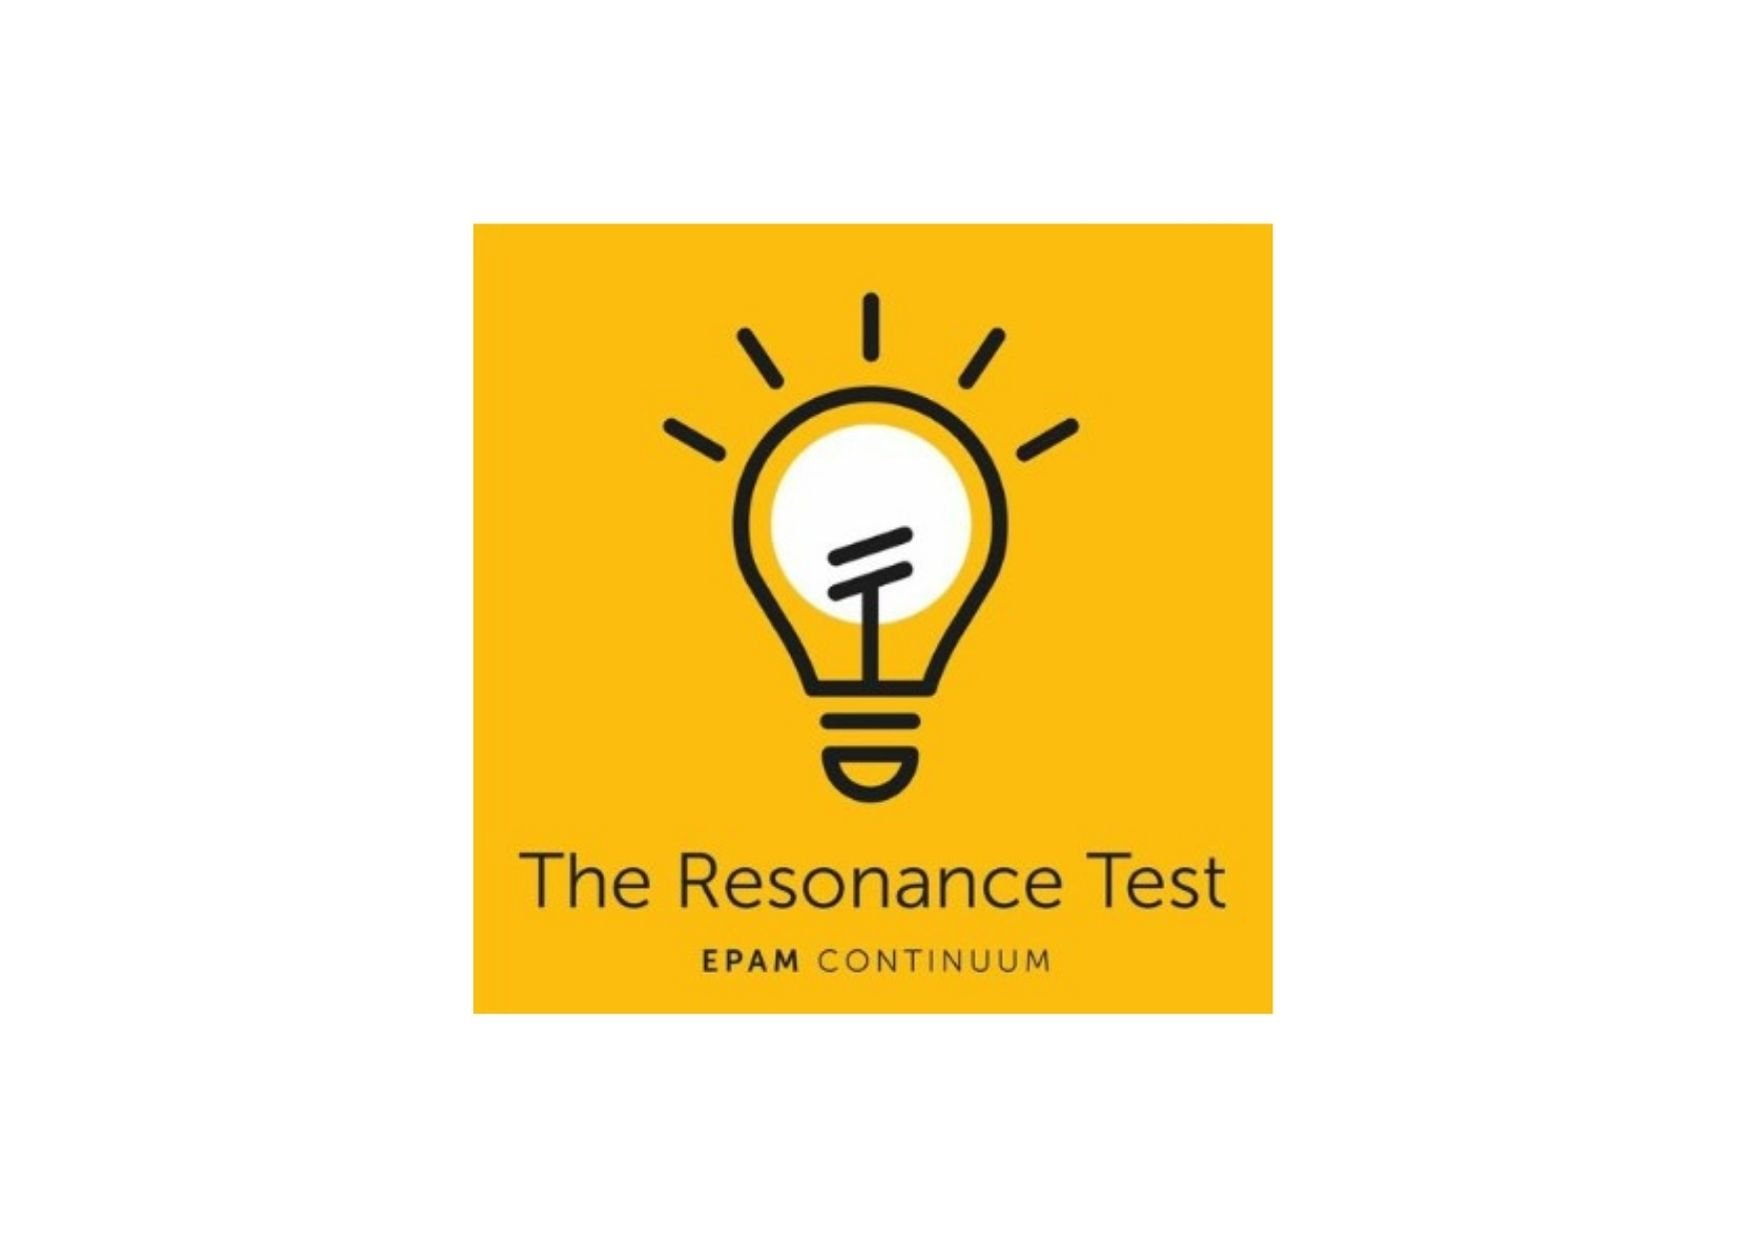 Noreena's Interview for The Resonance Test Podcast